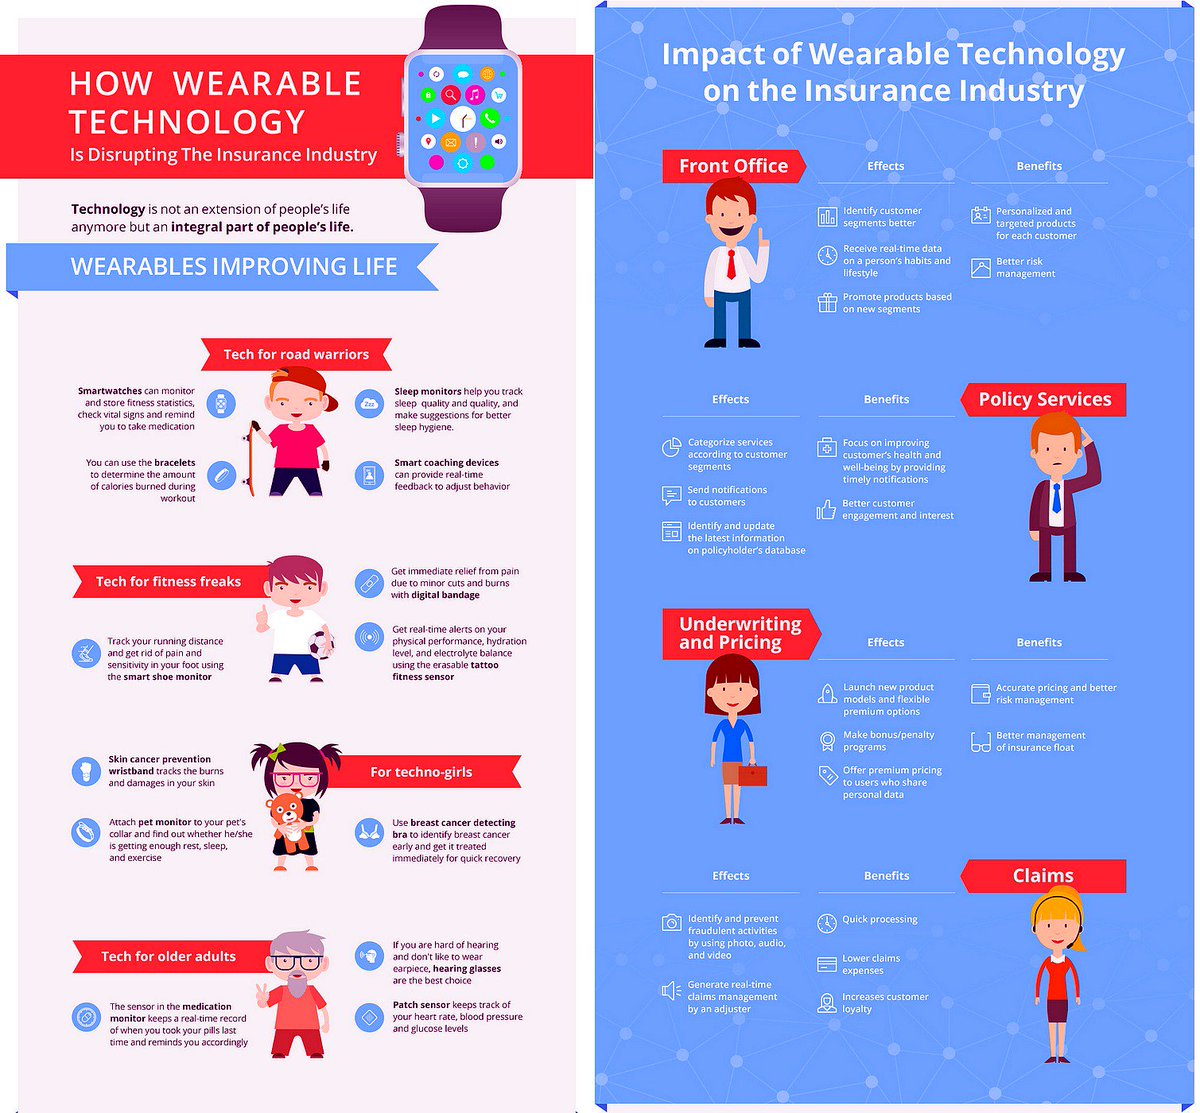 How Wearable Technology is Disrupting The Insurance Industry [Infographic]  #Insurtech #Wearables #Fintech #CX<br>http://pic.twitter.com/EkZUlIQICq